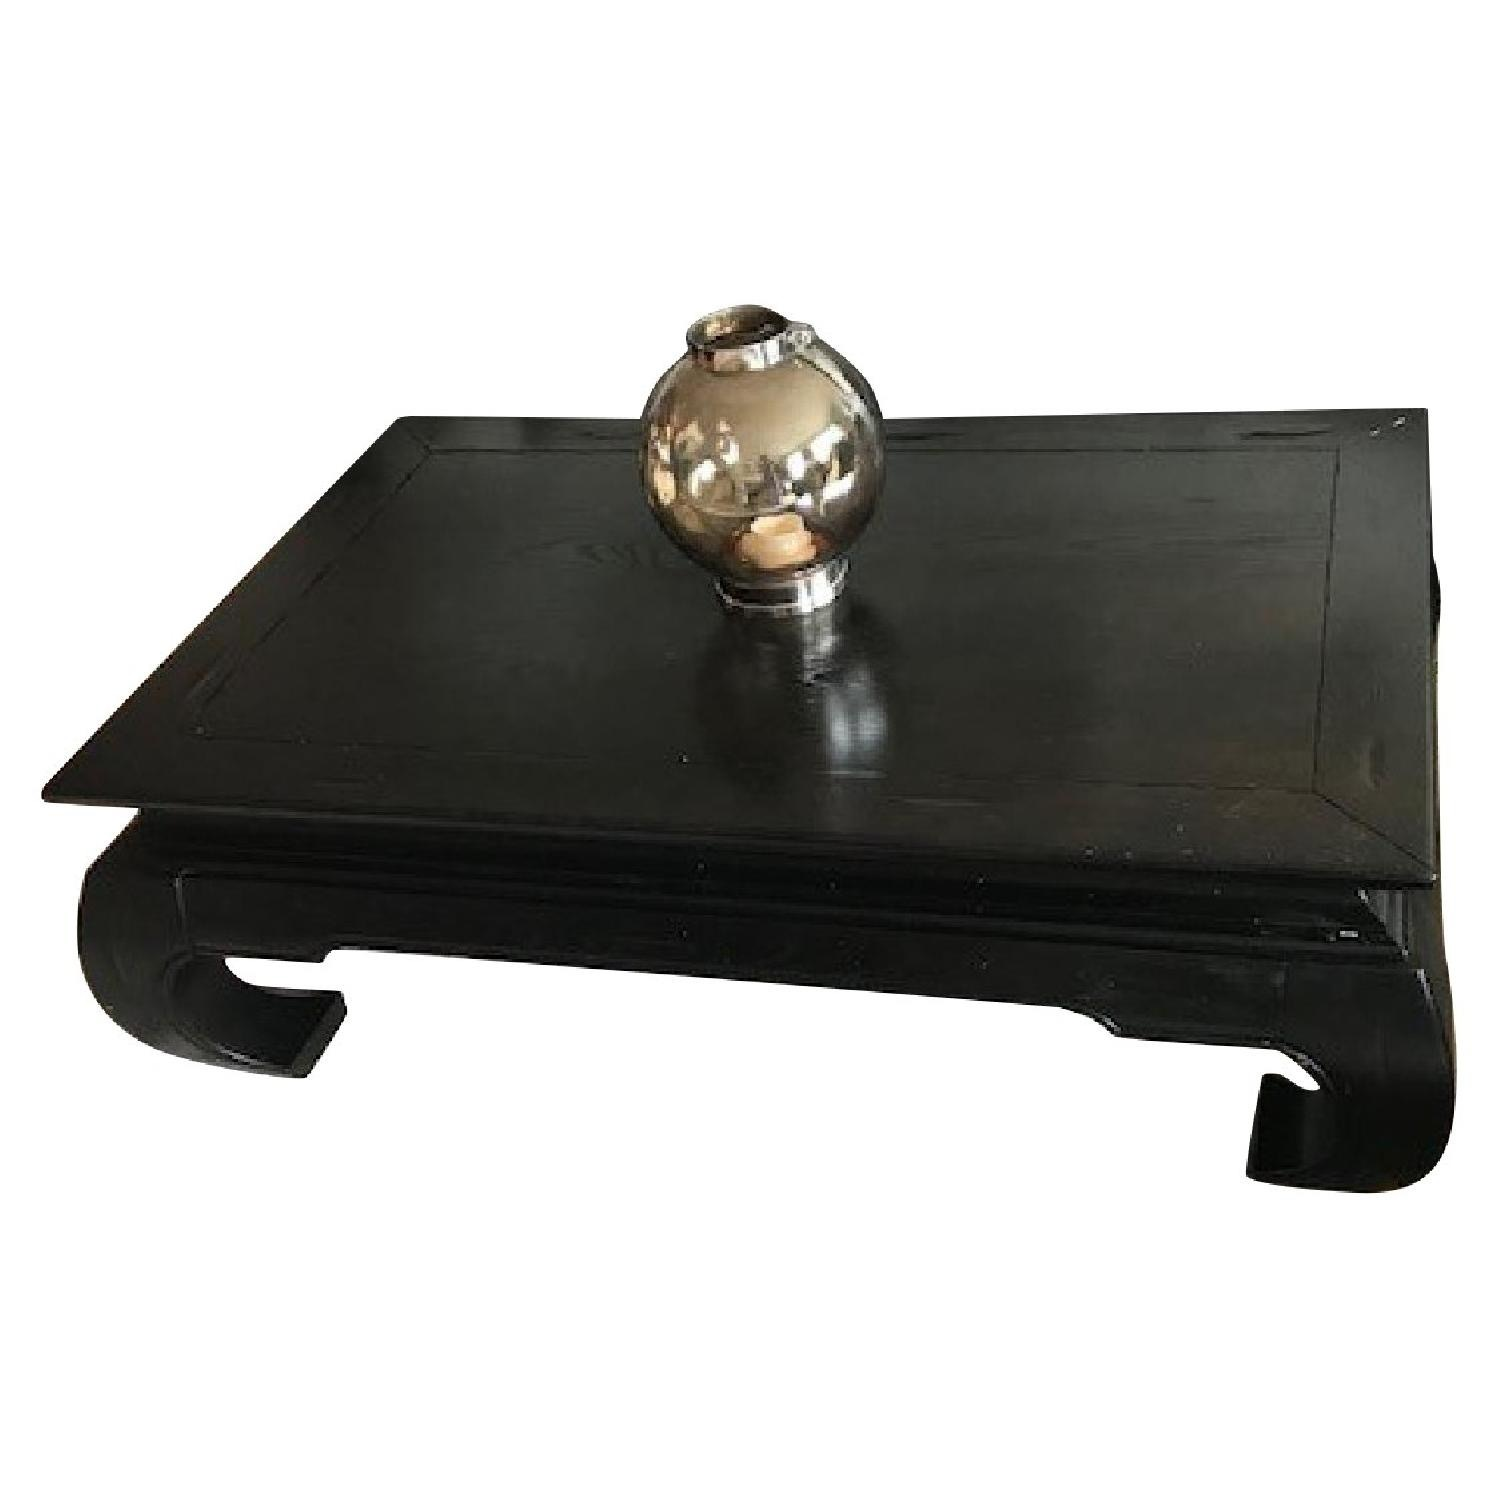 Huffman Koos Furniture Brown Coffee Table